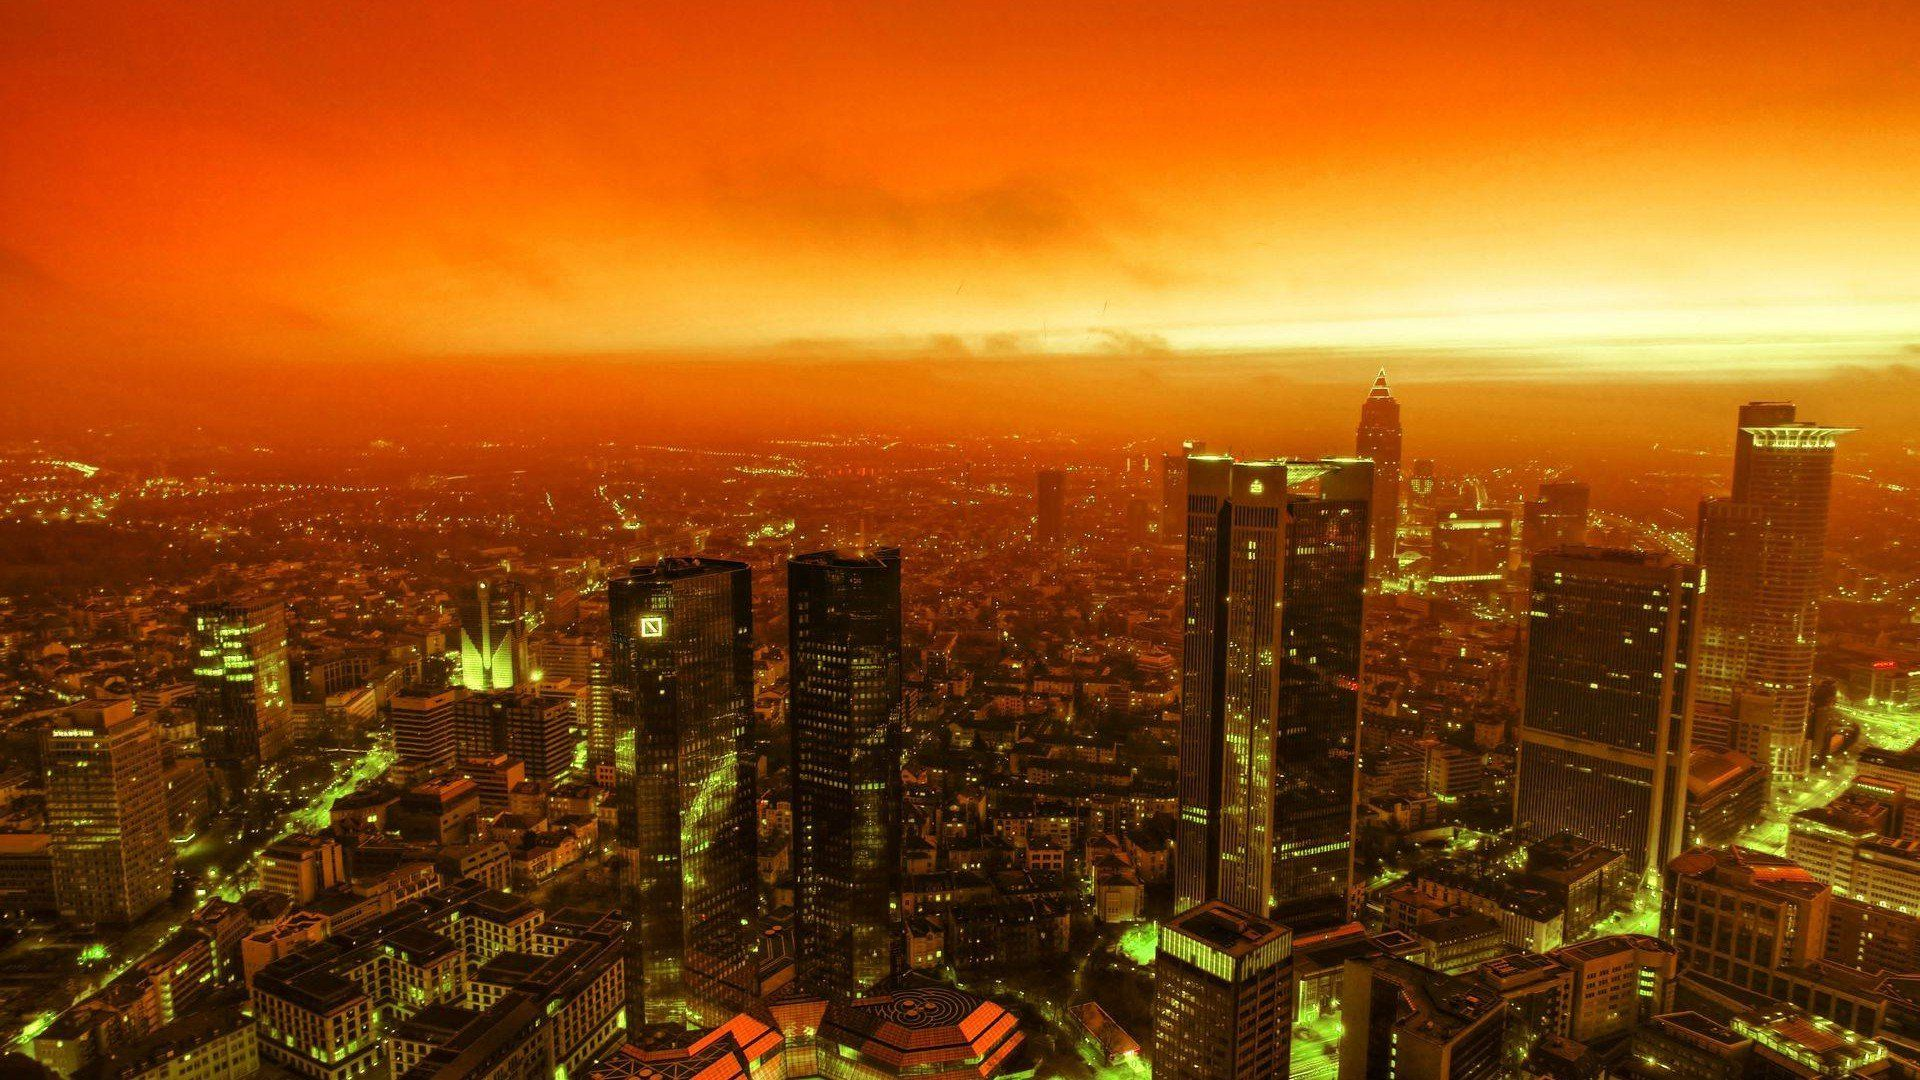 Anime Sunset City Wallpapers - Wallpaper Cave